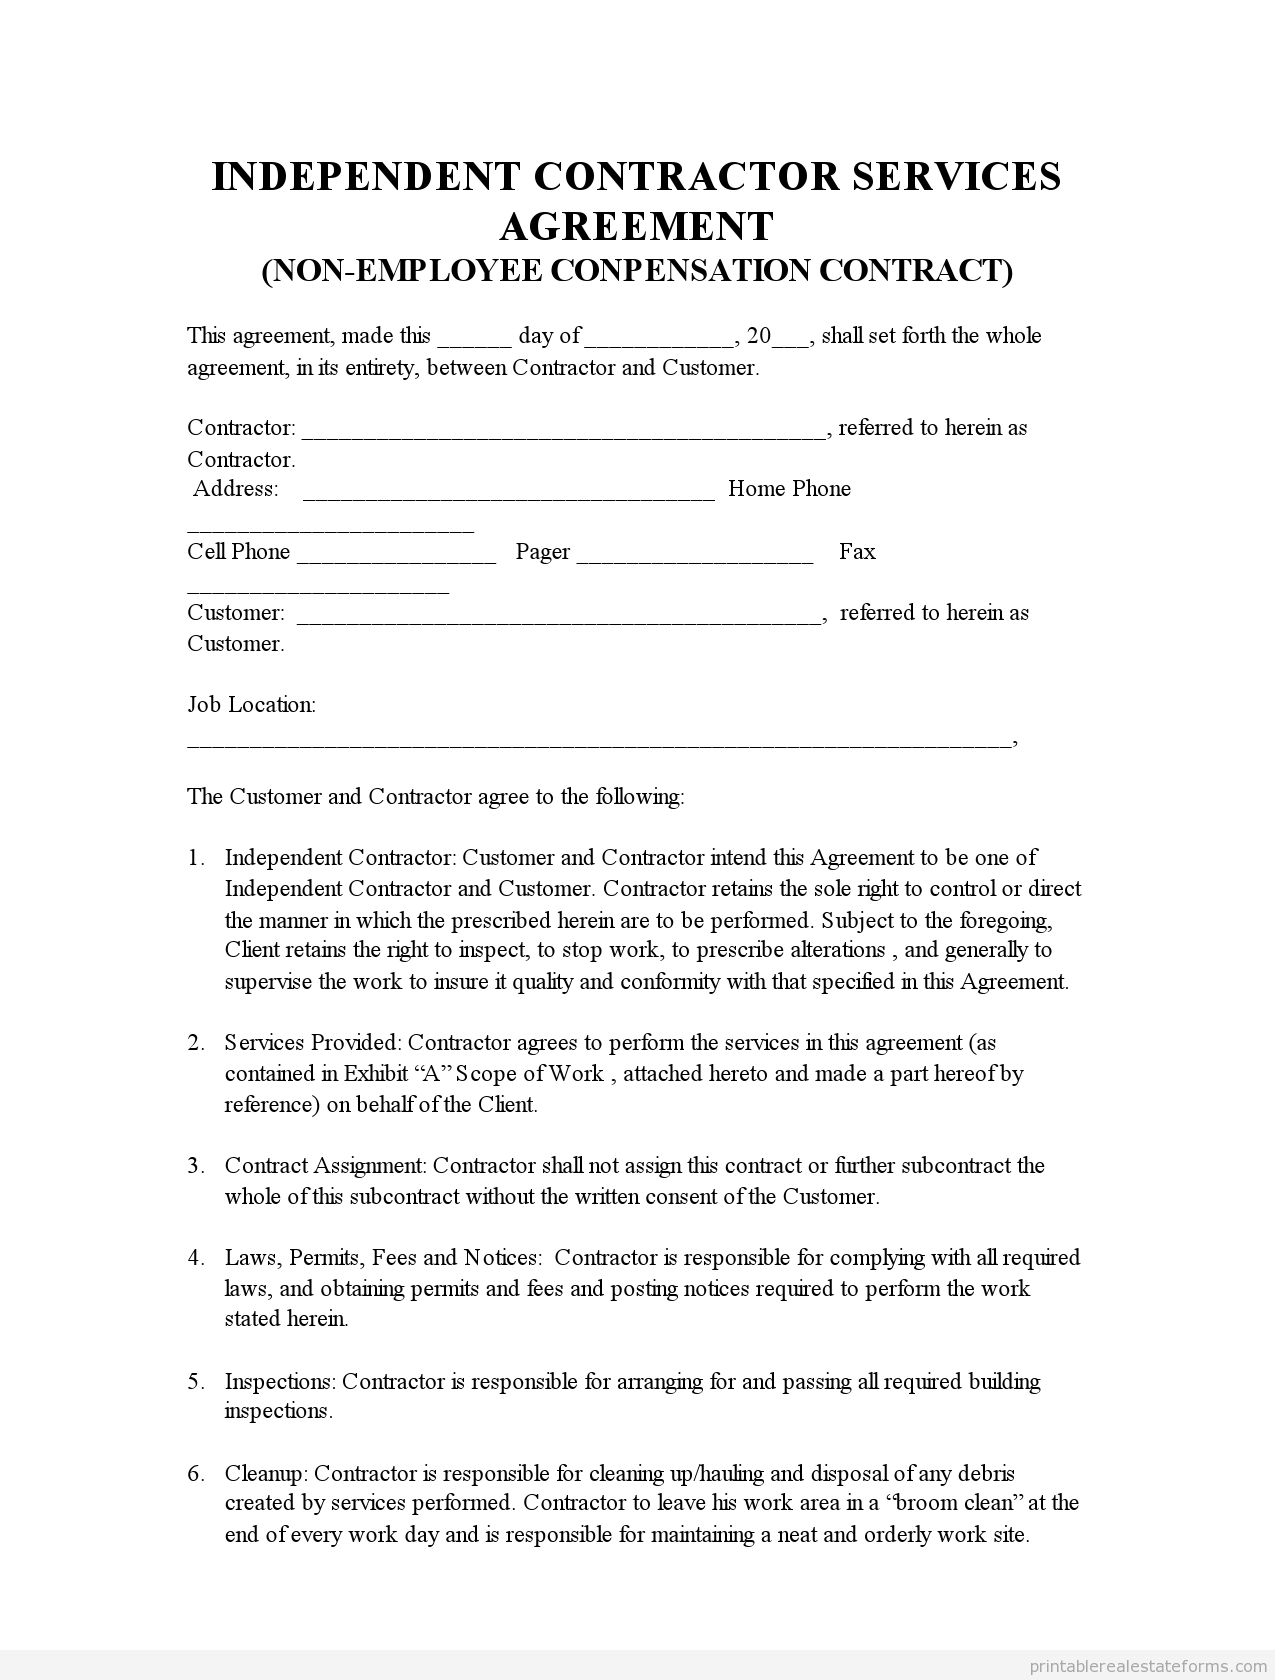 Indep Contractor Agreement 2